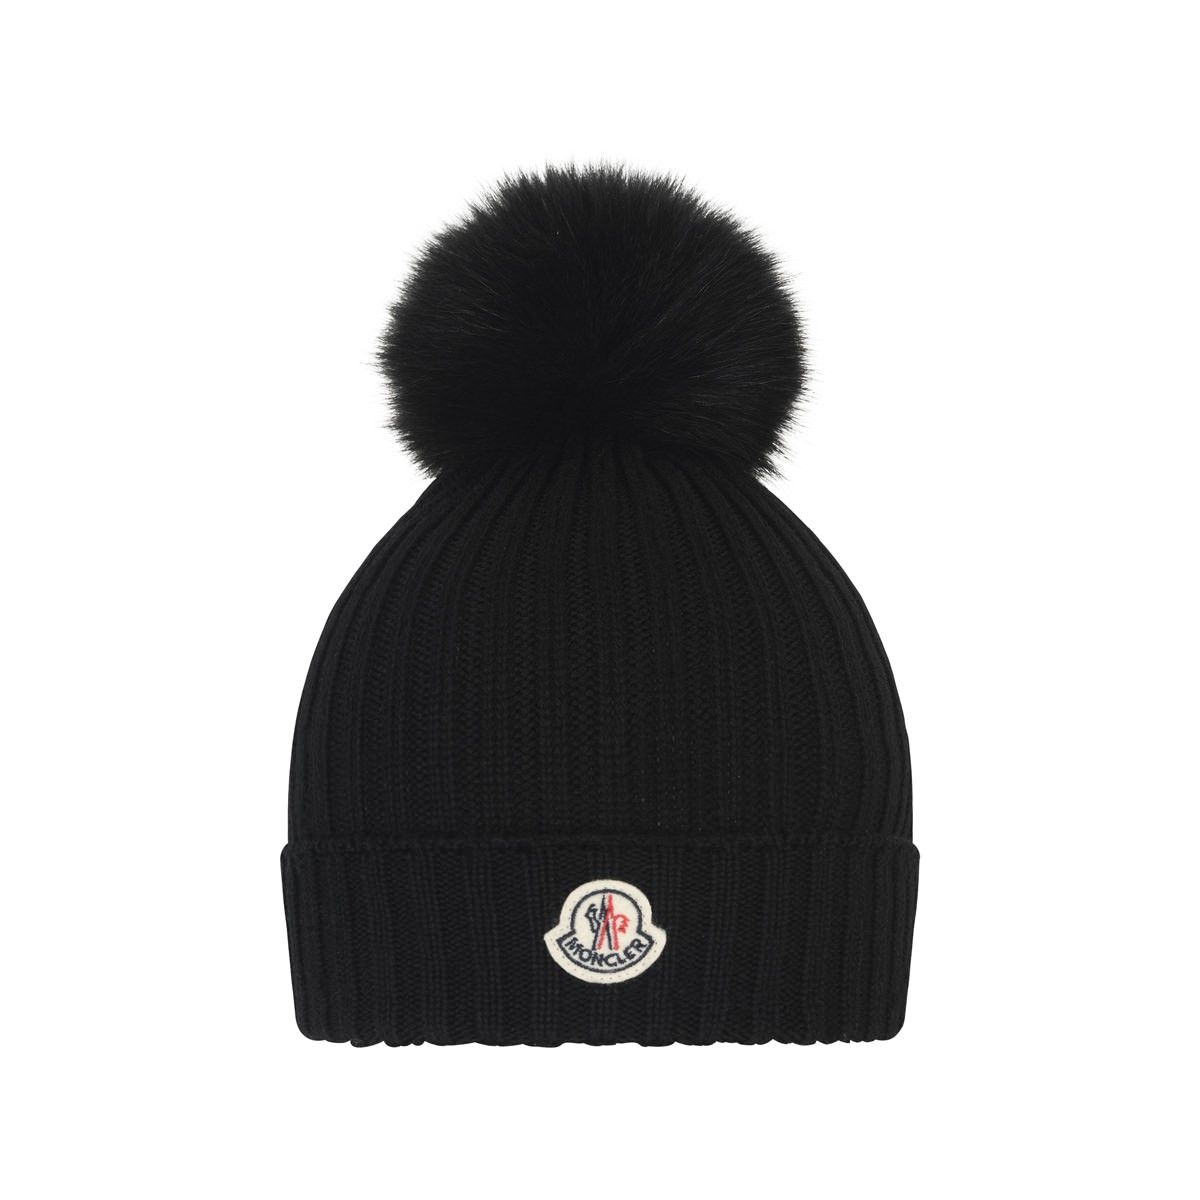 Black Moncler Fur Pom Pom Hat